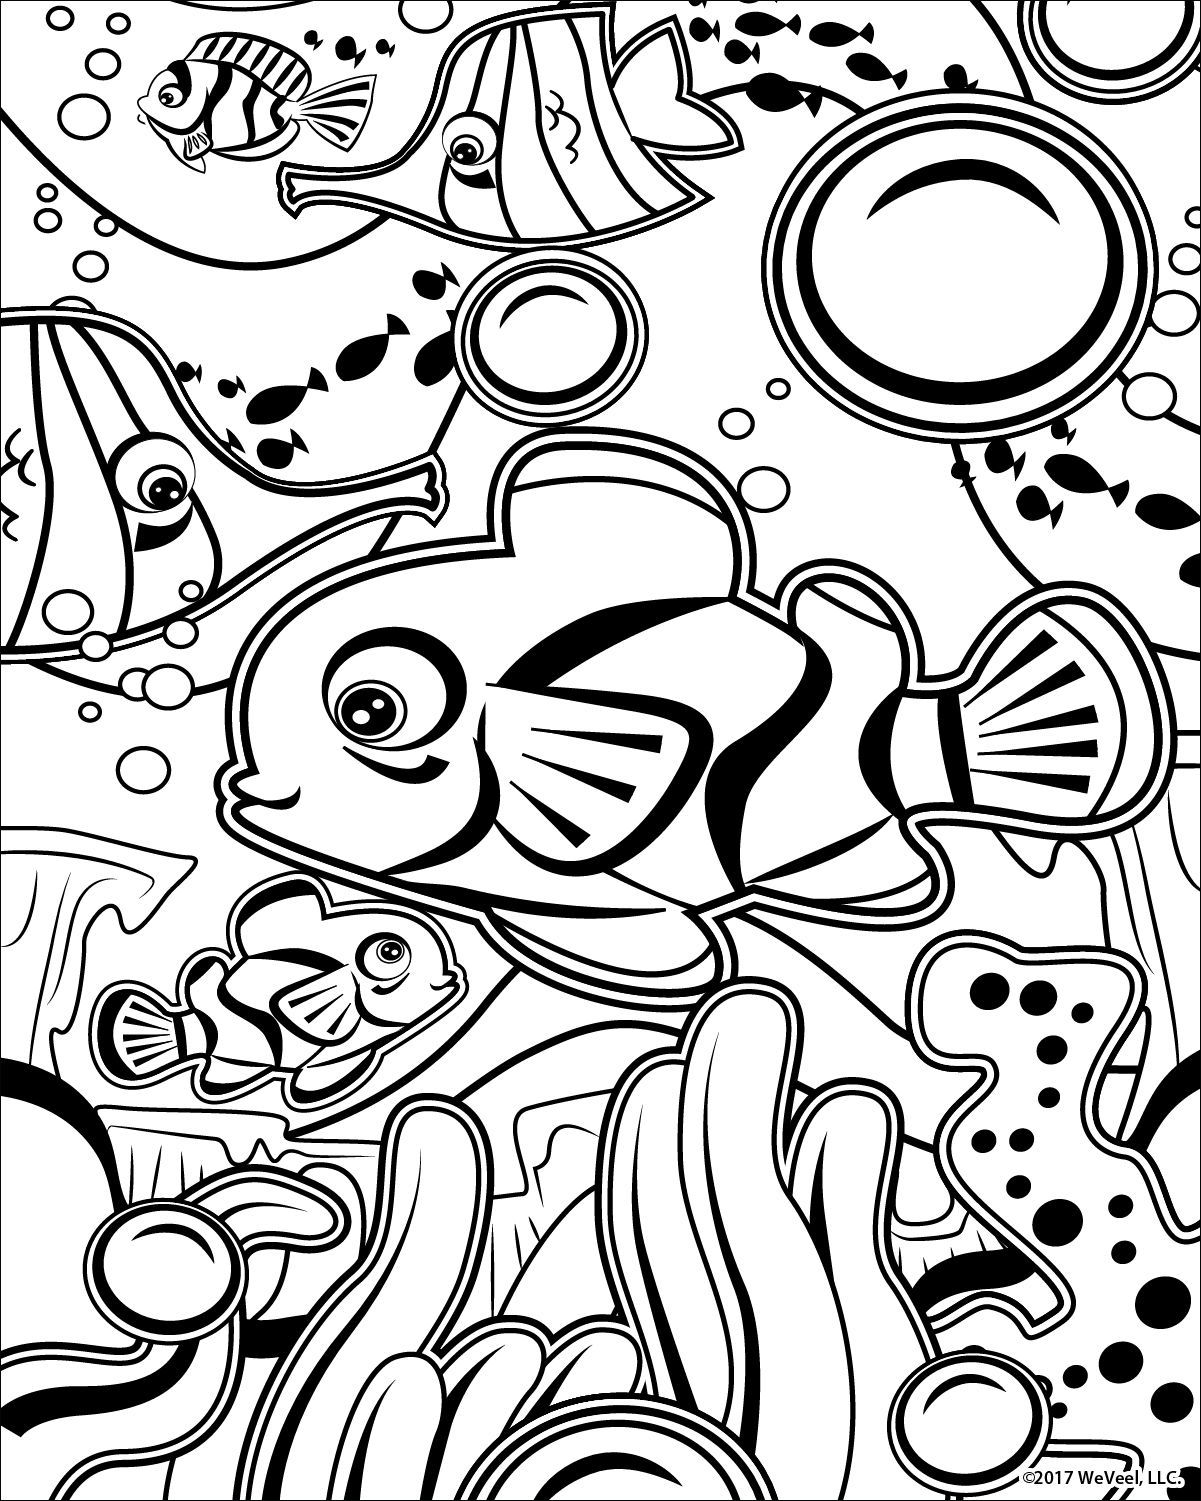 Coloring Pages For Kids Sea Life Coloring Pages Candy Coloring Pages Cute Coloring Pages